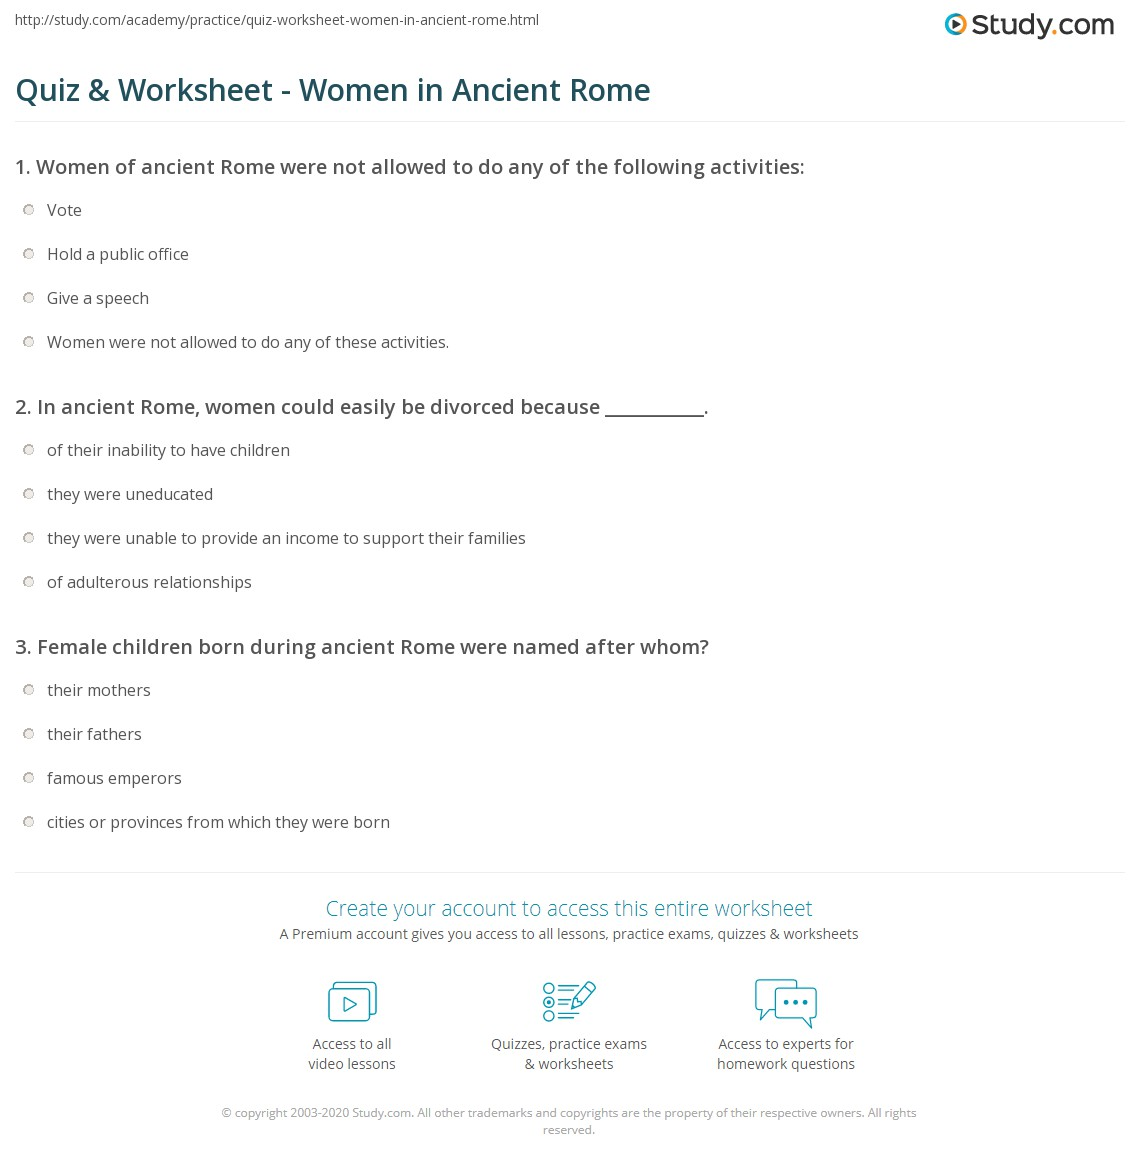 ancient rome essay quiz worksheet women in ancient rome com r  quiz worksheet women in ancient rome com print women in ancient rome facts daily life history